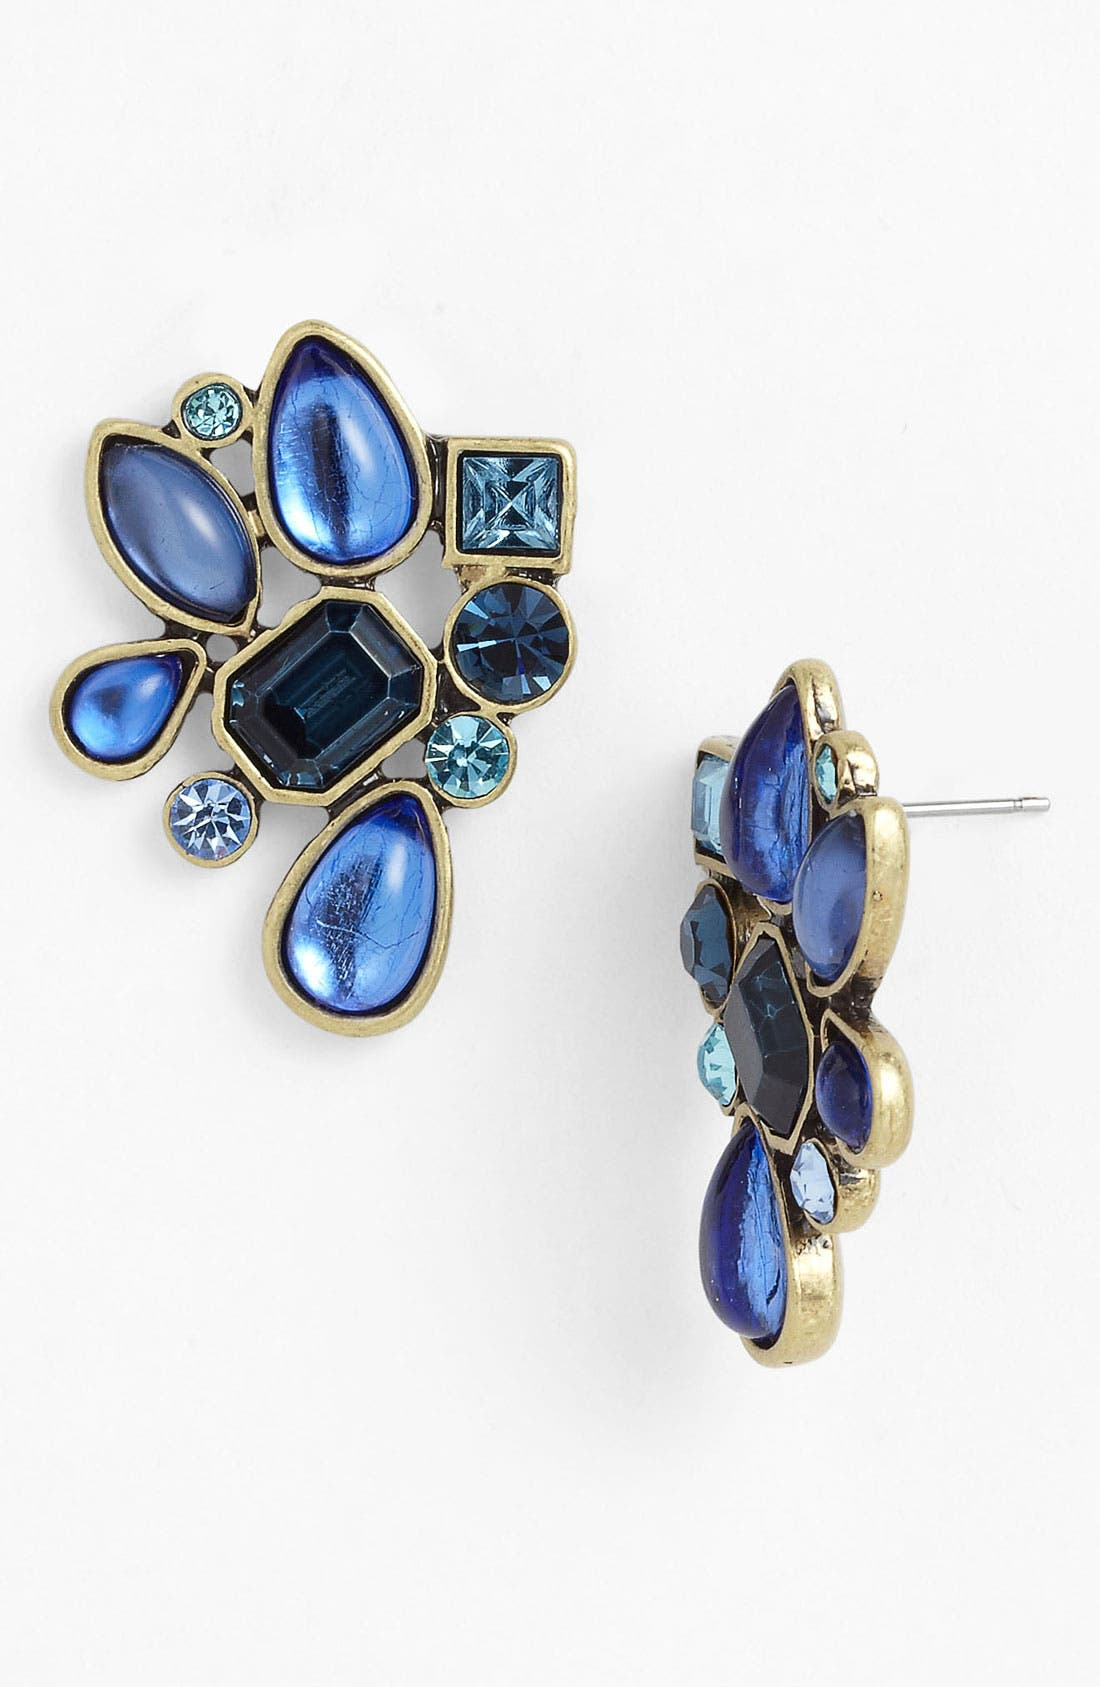 Main Image - Nordstrom 'Old Hollywood' Stud Earrings